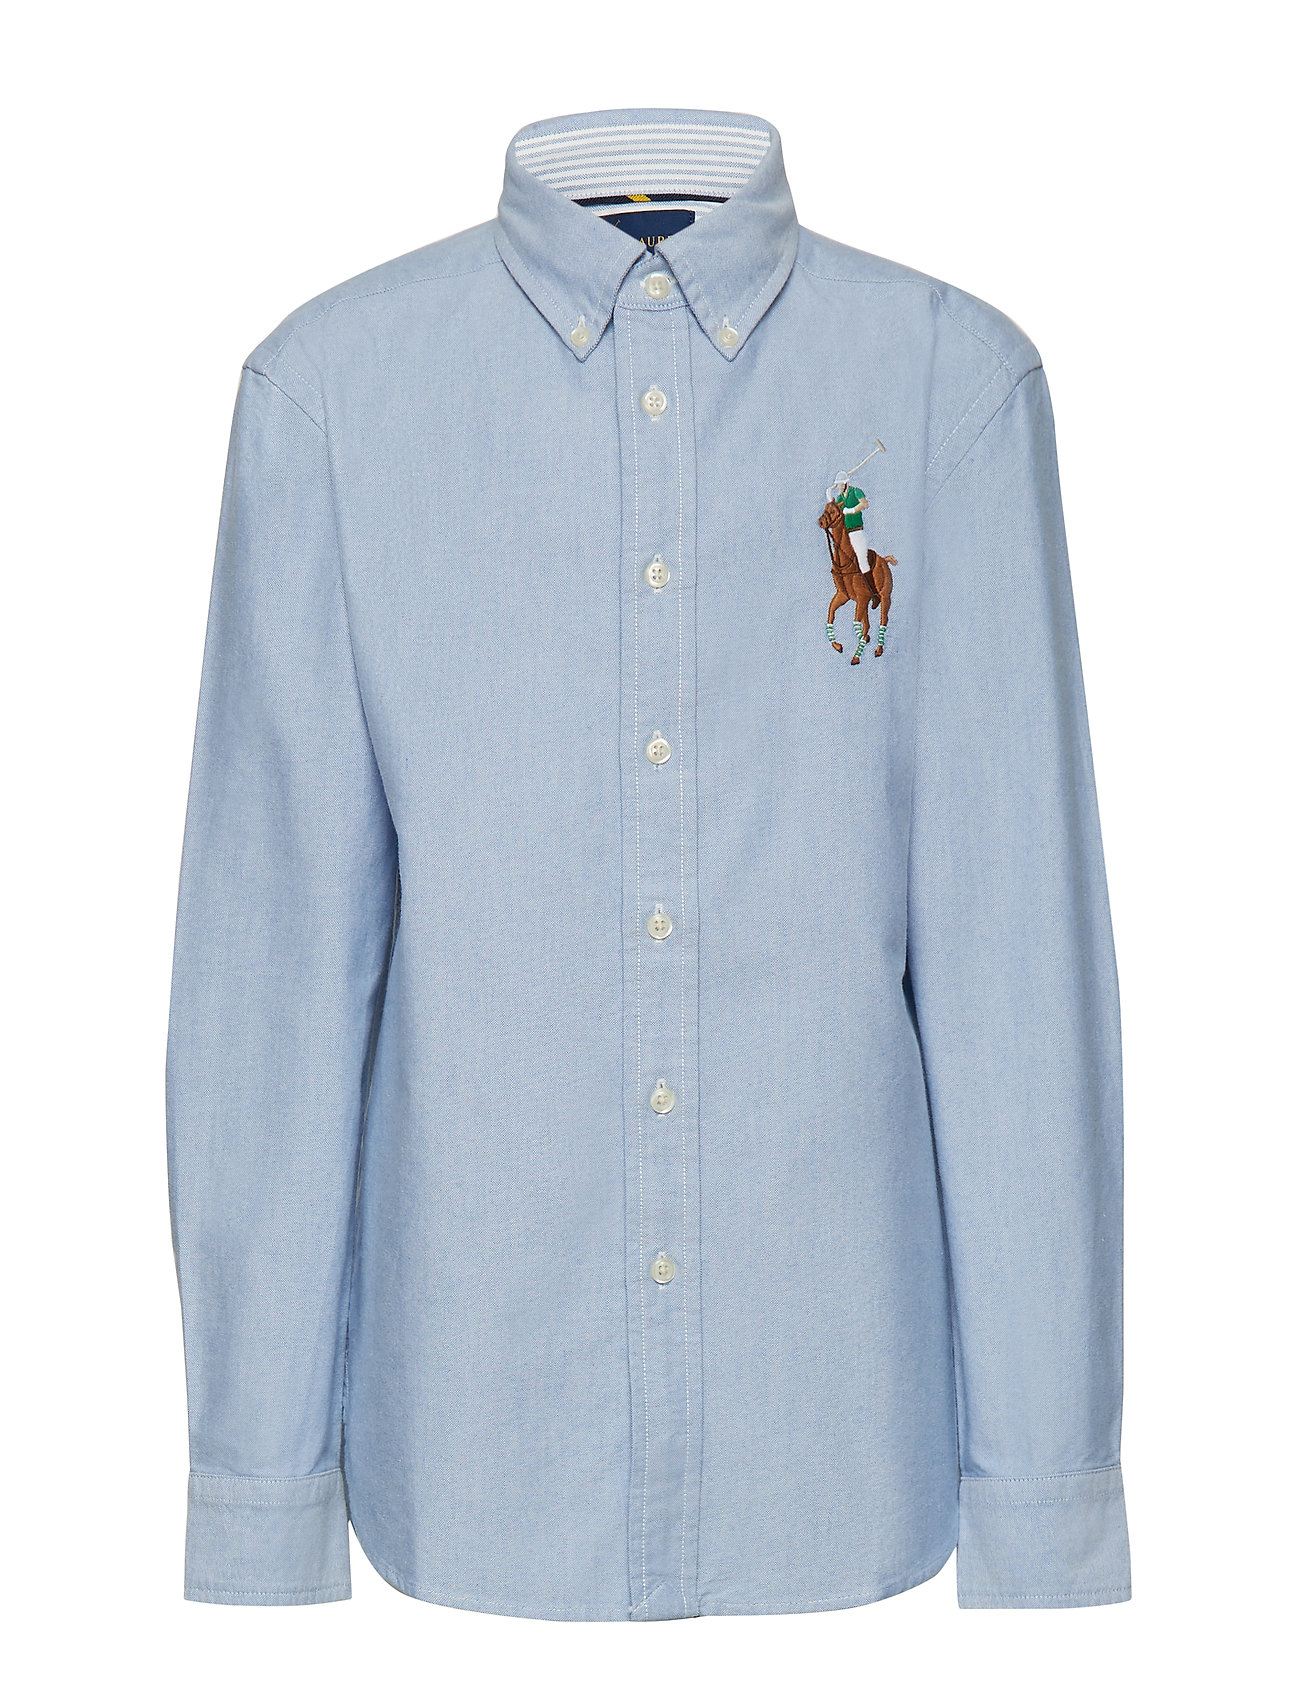 Ralph Lauren Kids Big Pony Cotton Oxford Shirt - BLUE